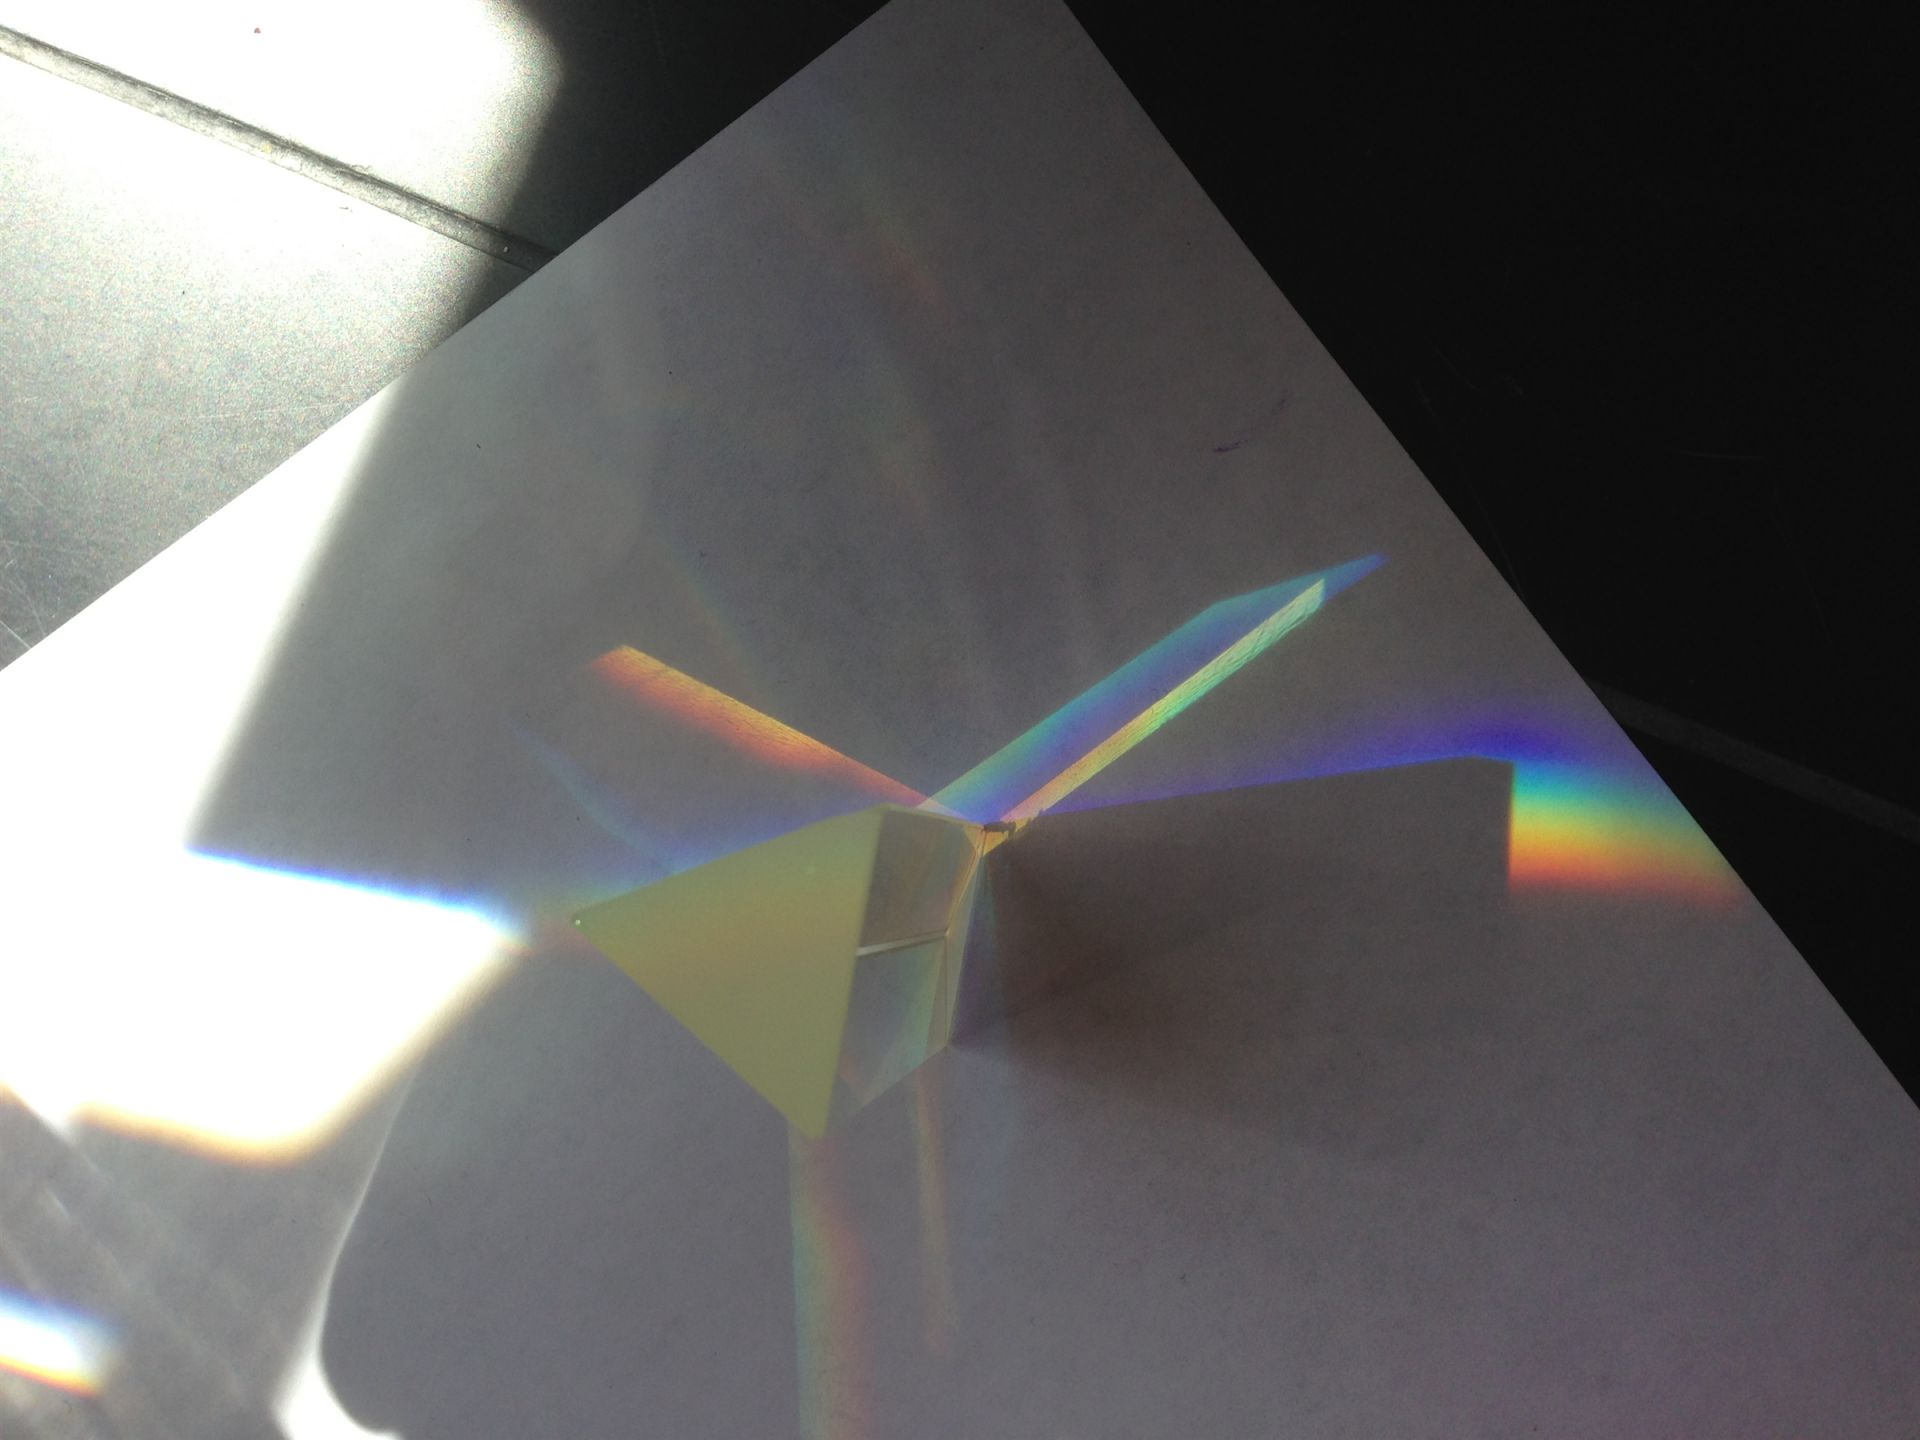 Rainbow light dispersion.